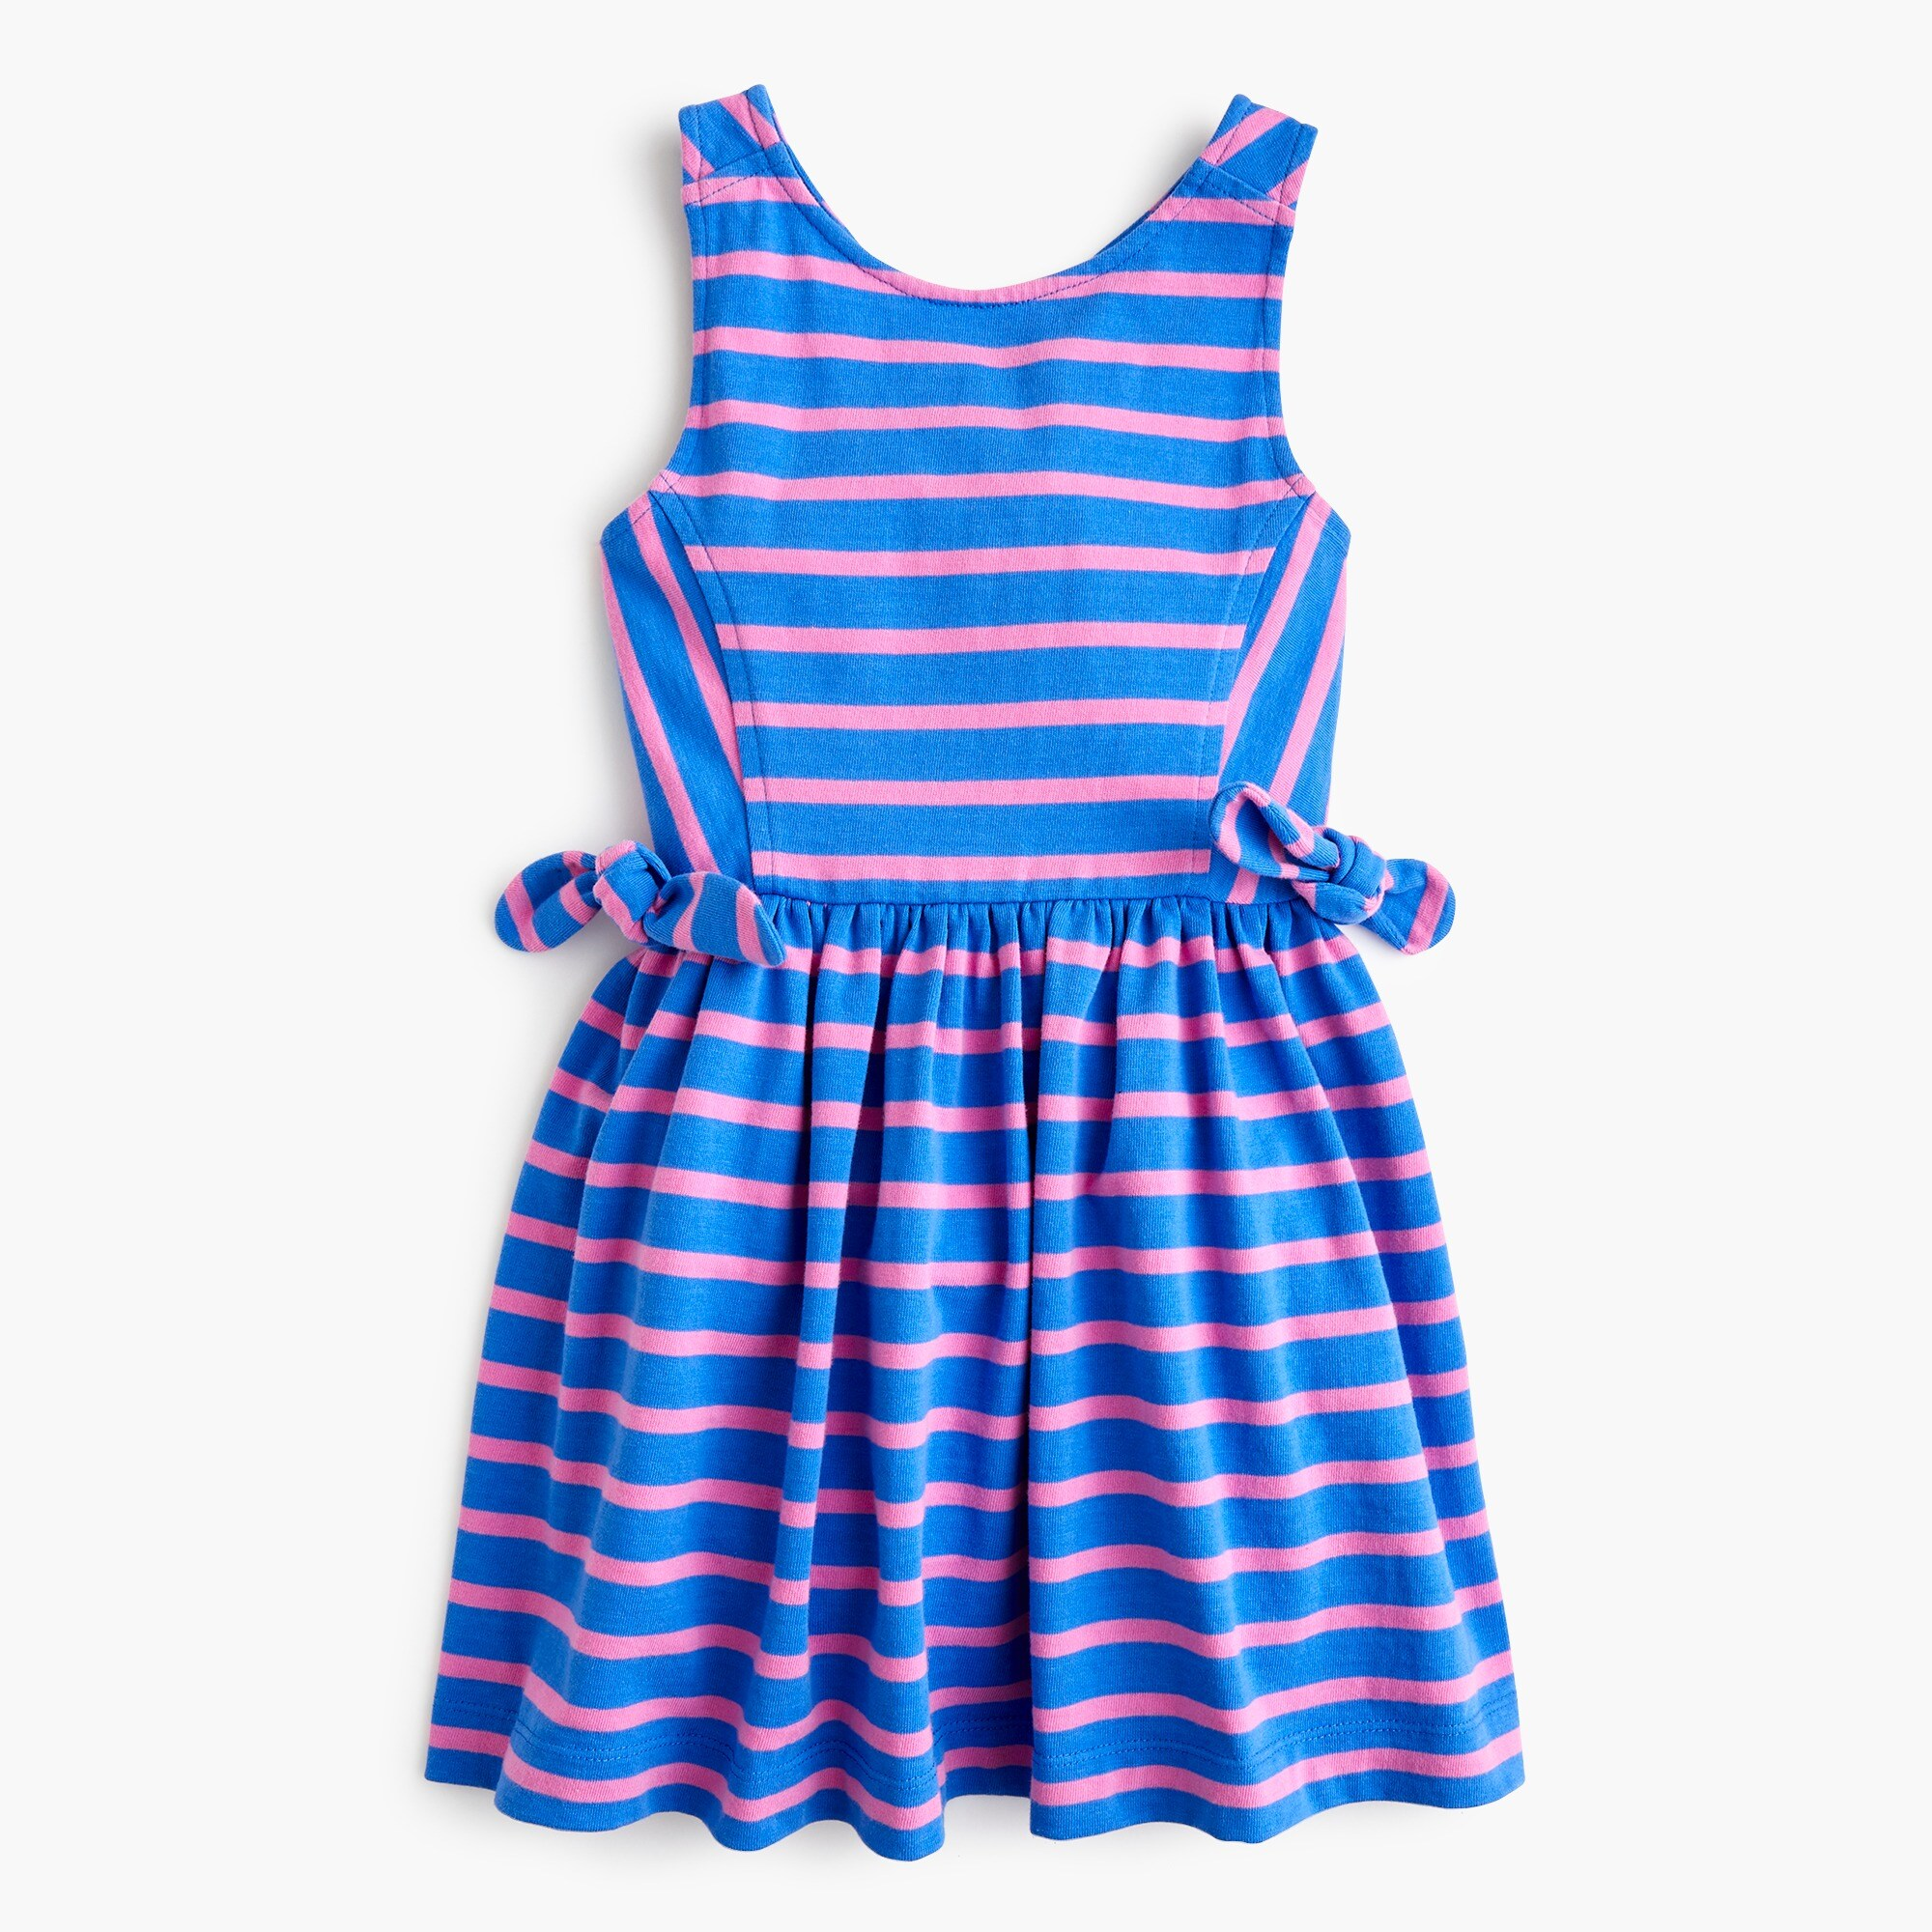 Girls' cross-back dress in stripes girl dresses & jumpsuits c